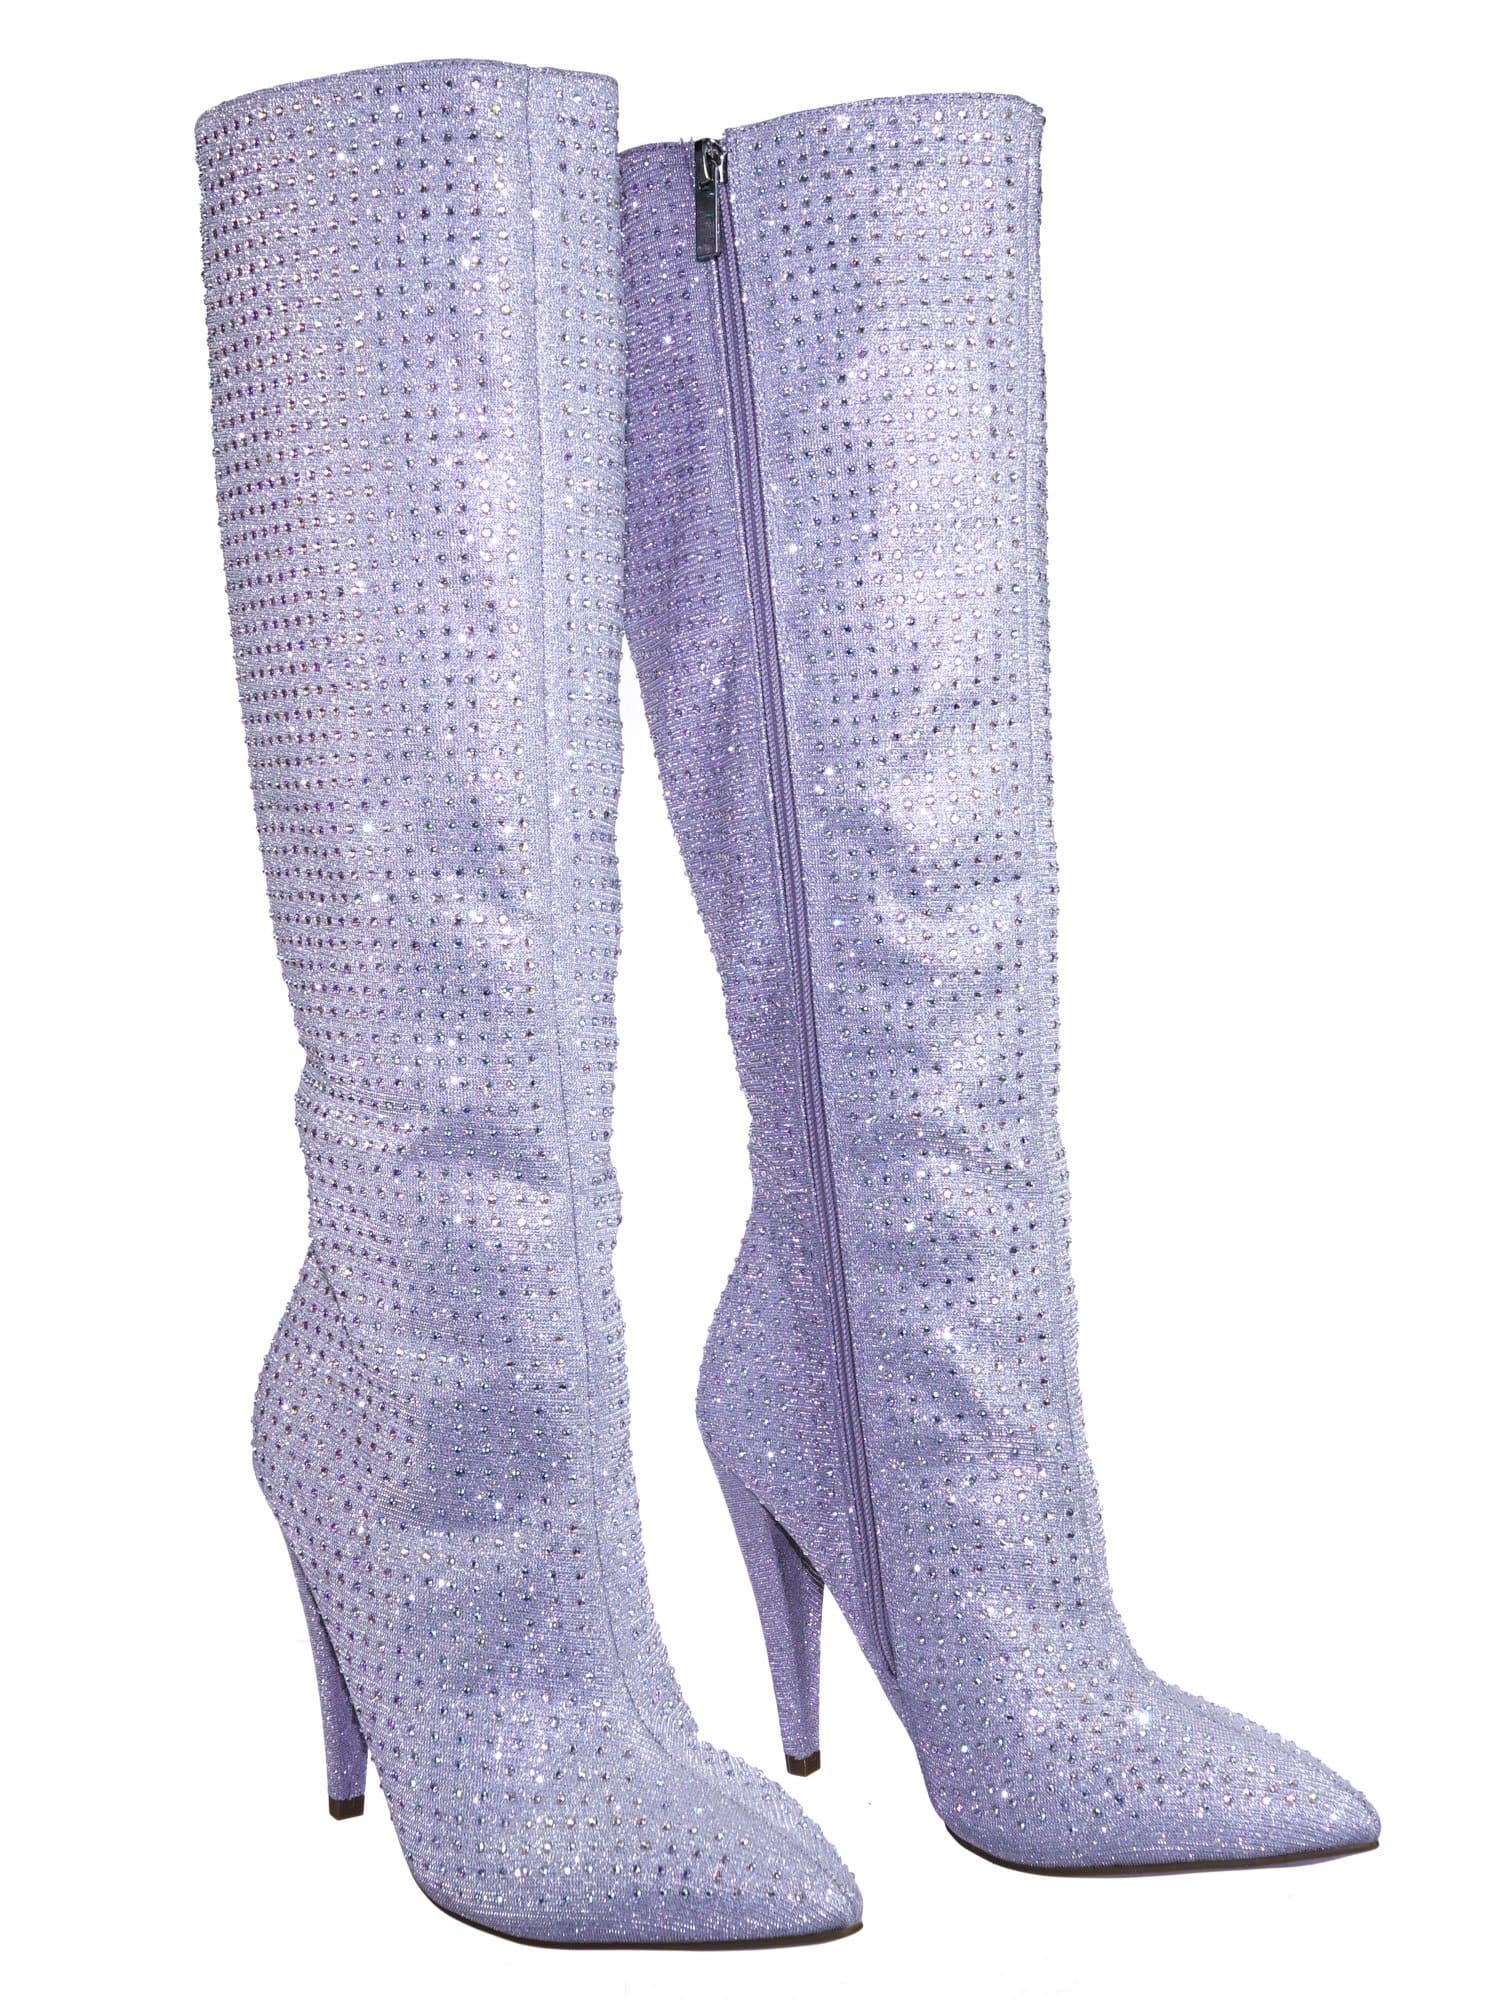 Magnolia13 SlvGlt Rhinestone Crystal w Glitter High Heel Strass Dress Boots